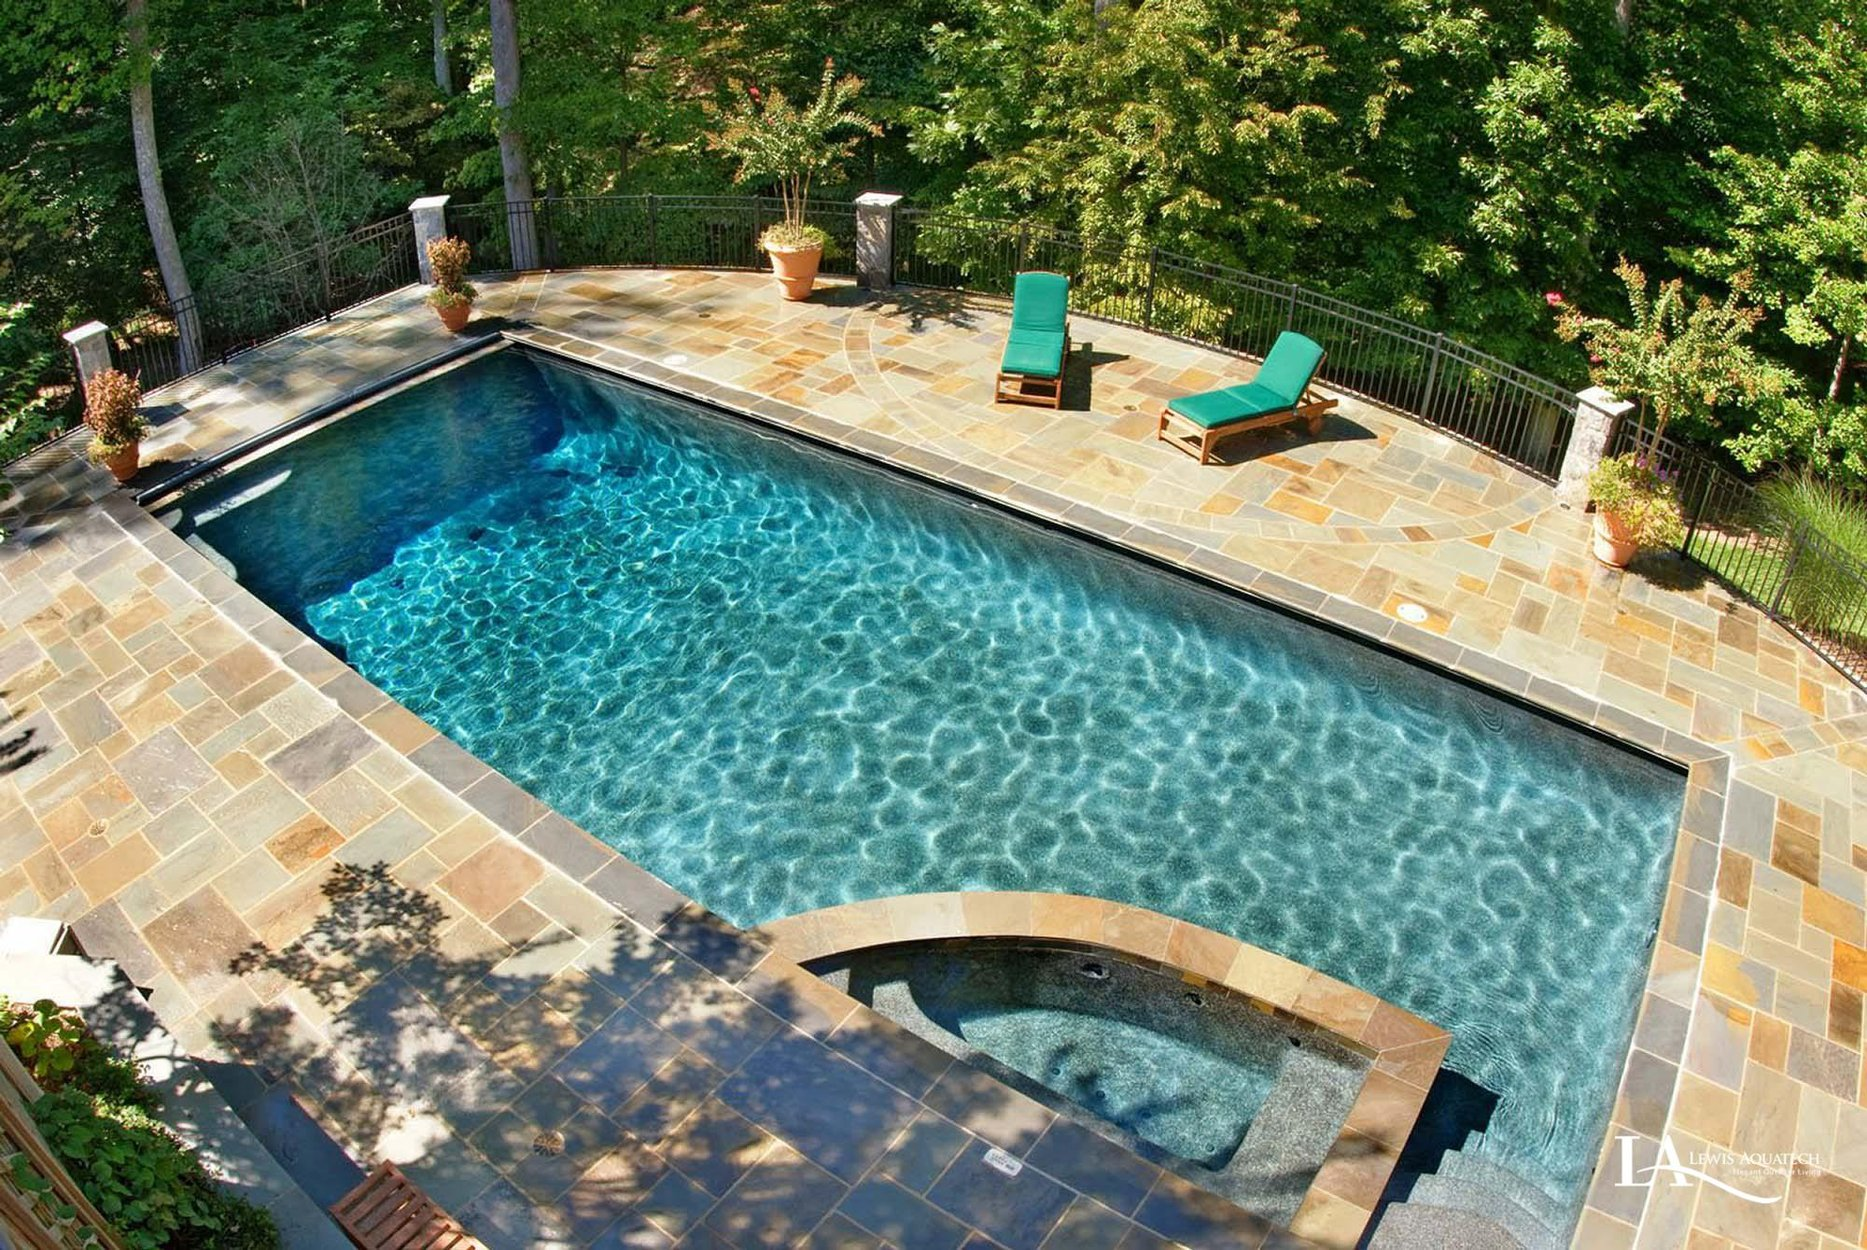 custom pool builder chantilly virginia inground pool construction landscaping hardscapes. Black Bedroom Furniture Sets. Home Design Ideas